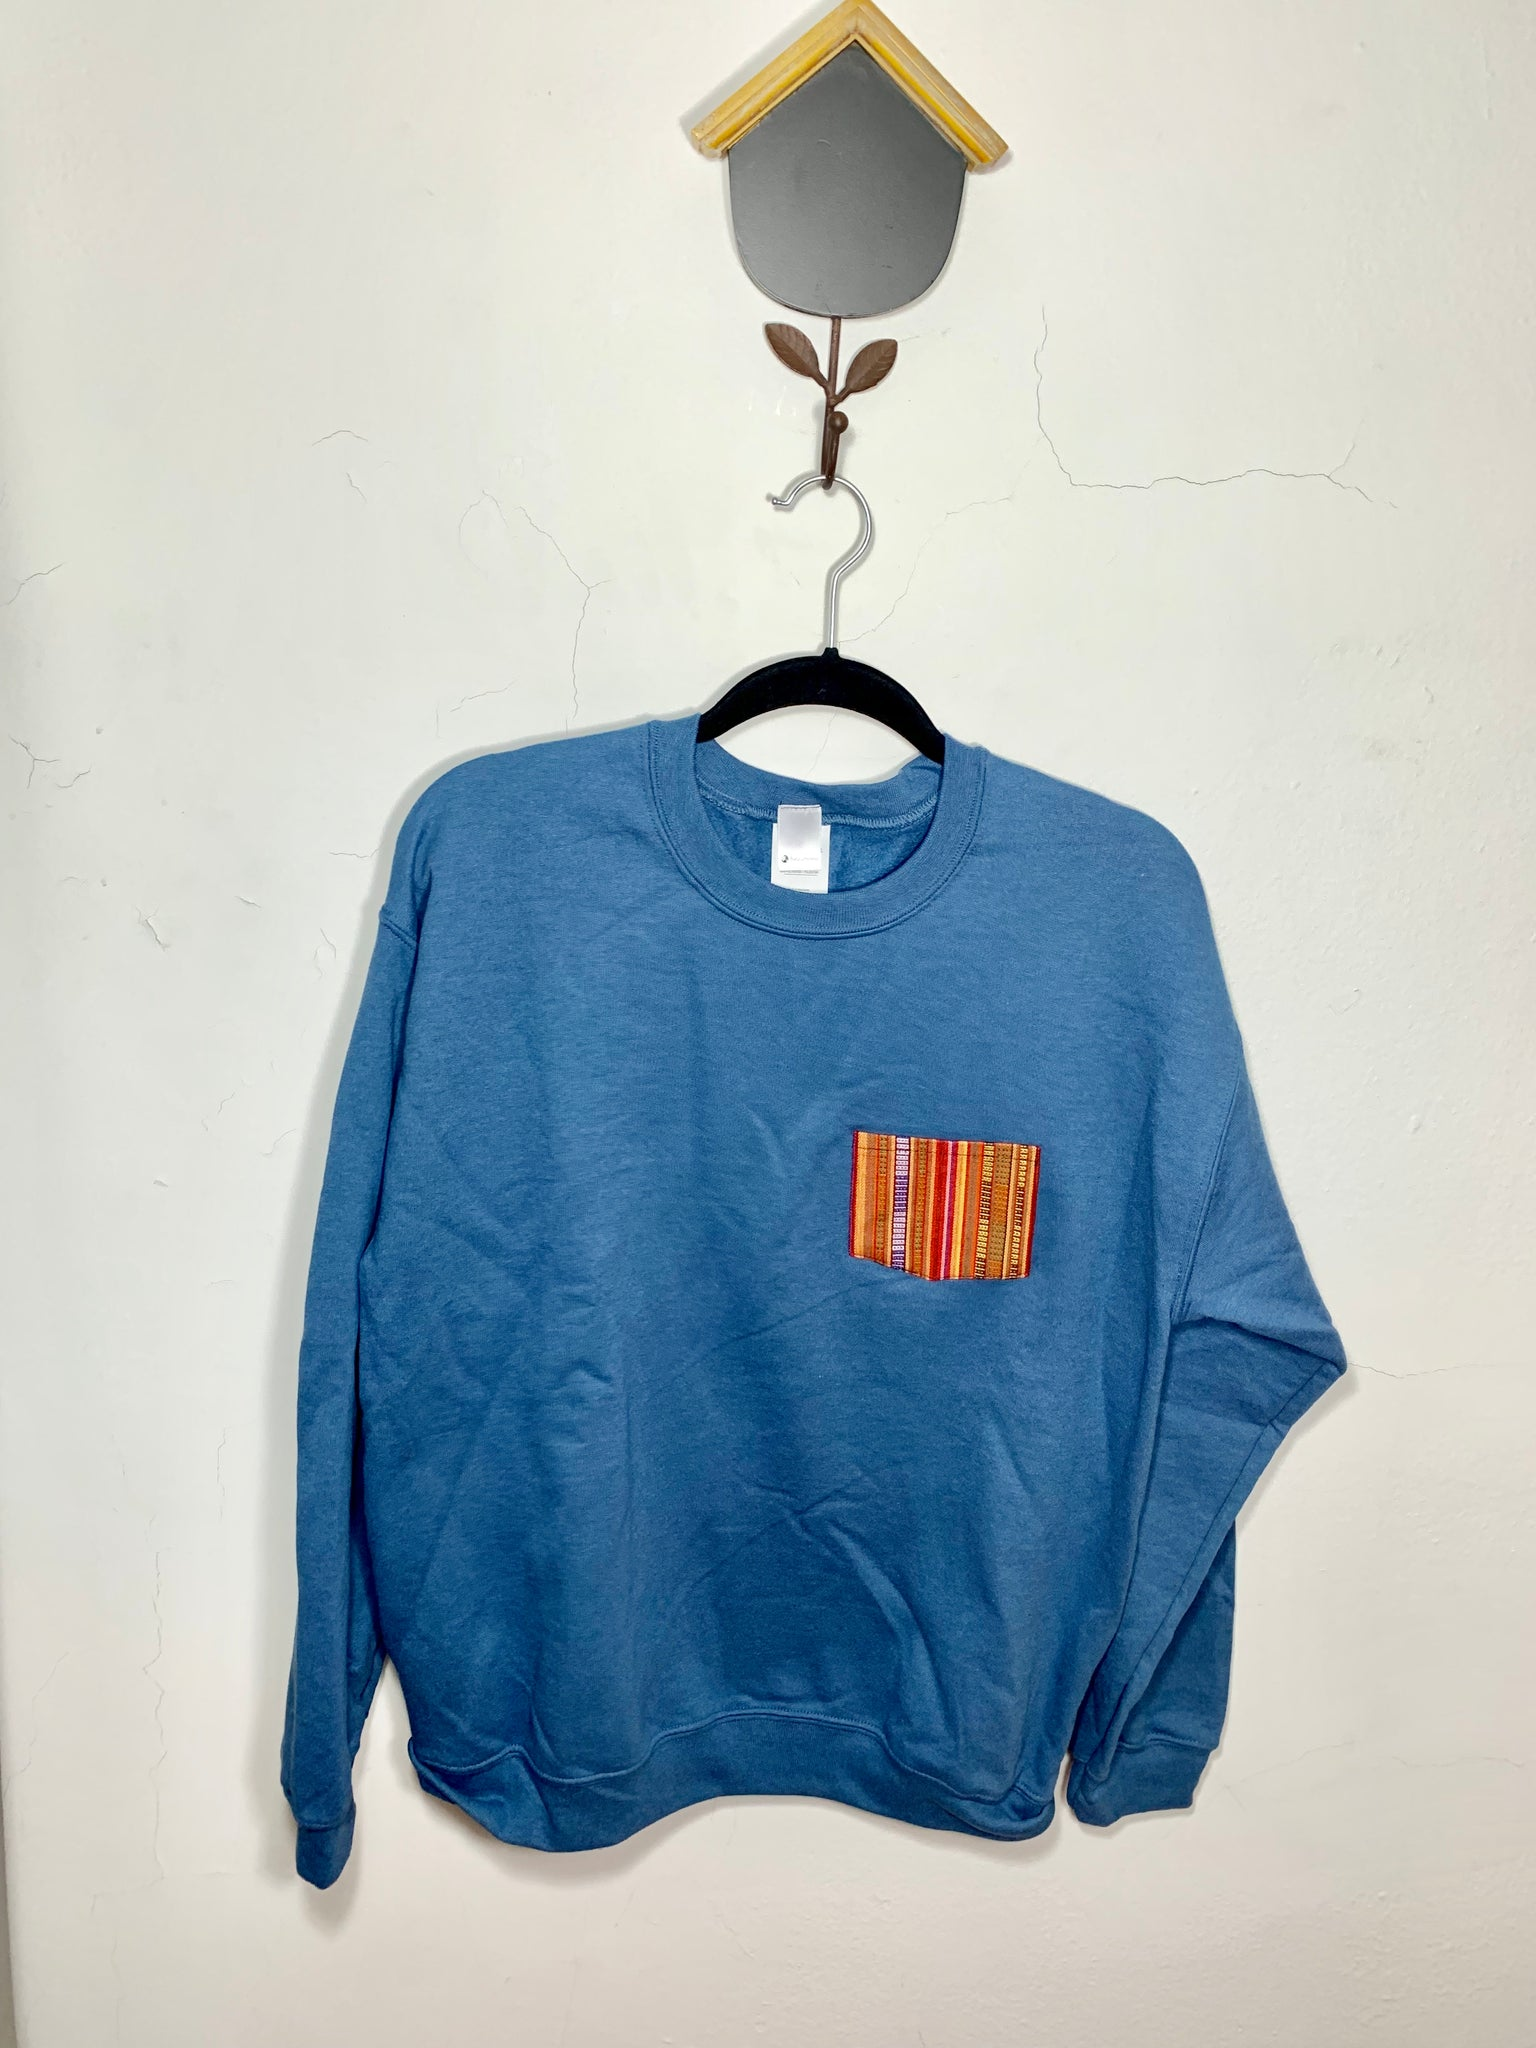 POCKET SWEATSHIRT - Orange on Indigo Blue